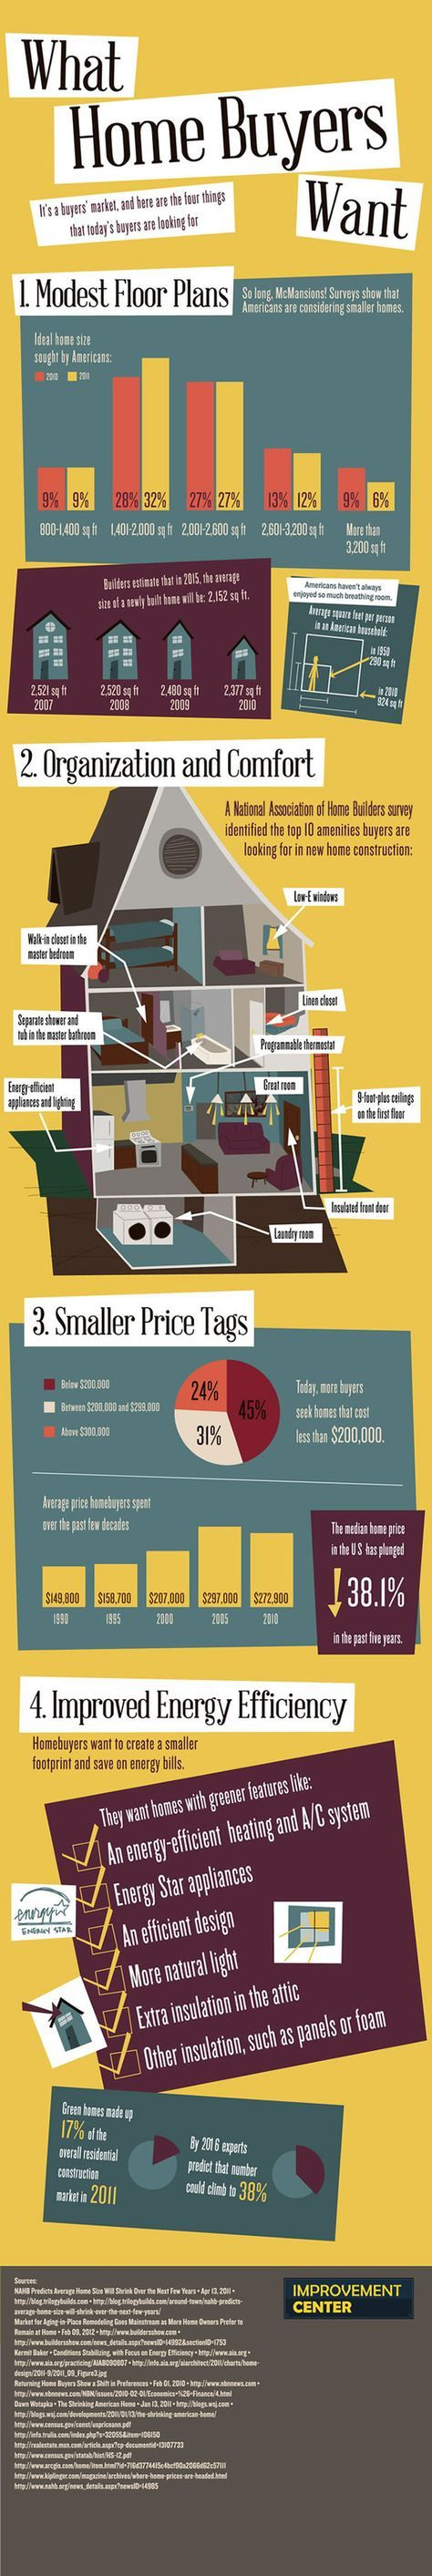 What Homebuyers Want [INFOGRAPHIC] (http://www.improvementcenter.com/advice/what-home-buyers-want-today.html)